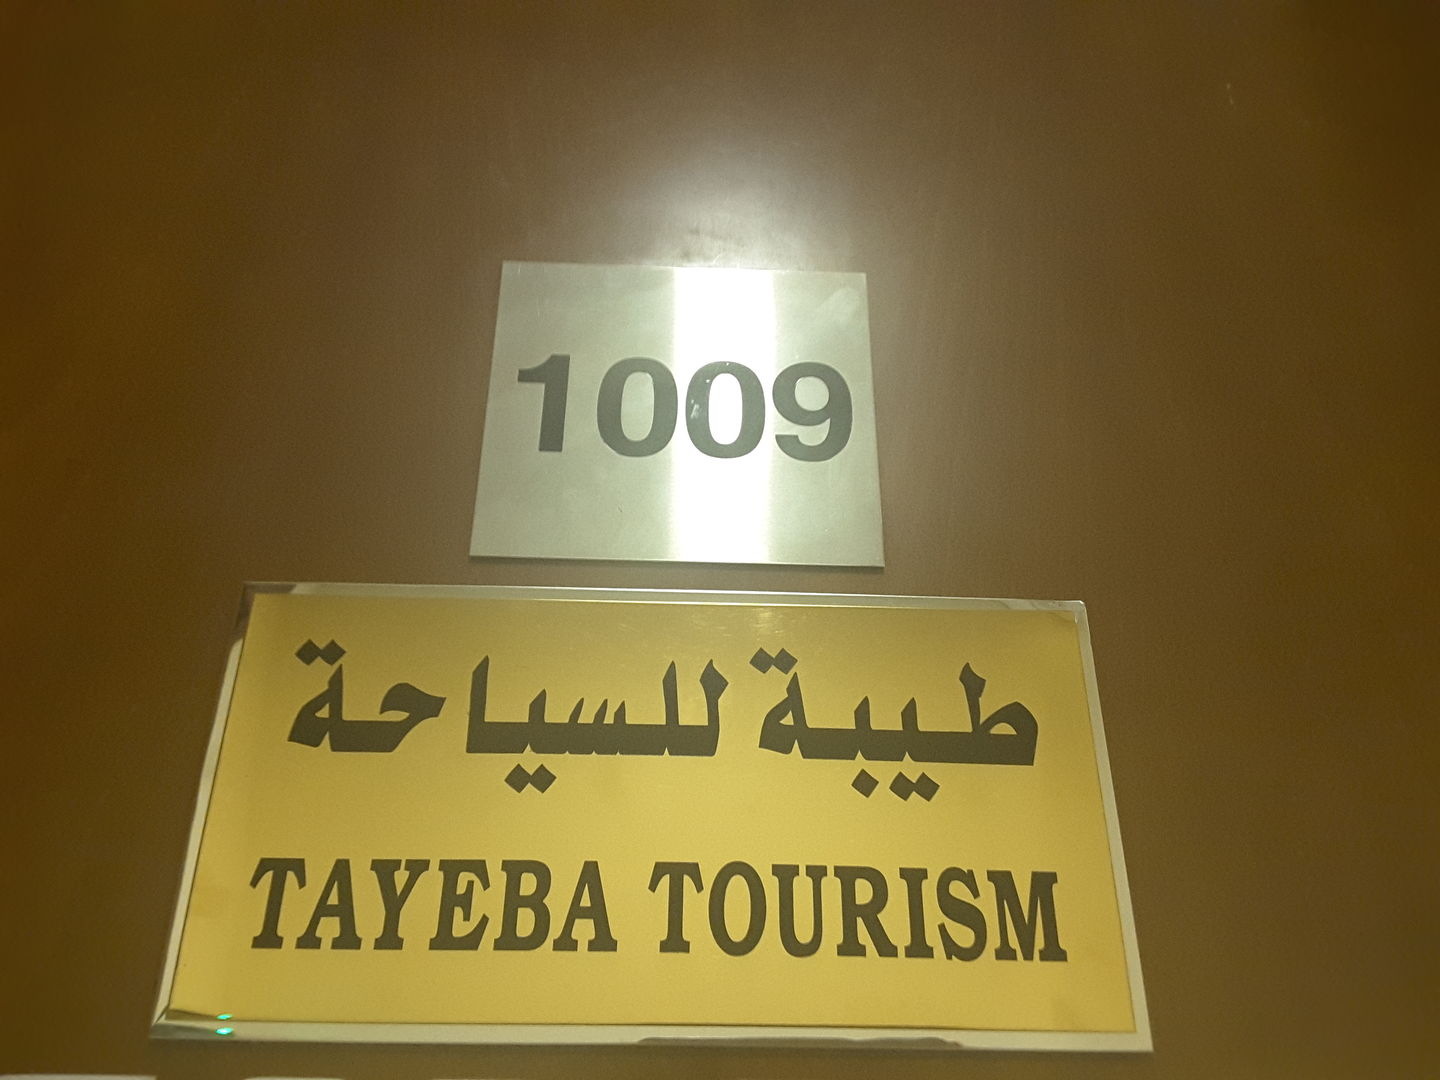 HiDubai-business-tayeba-tourism-hotels-tourism-local-tours-activities-business-bay-dubai-2